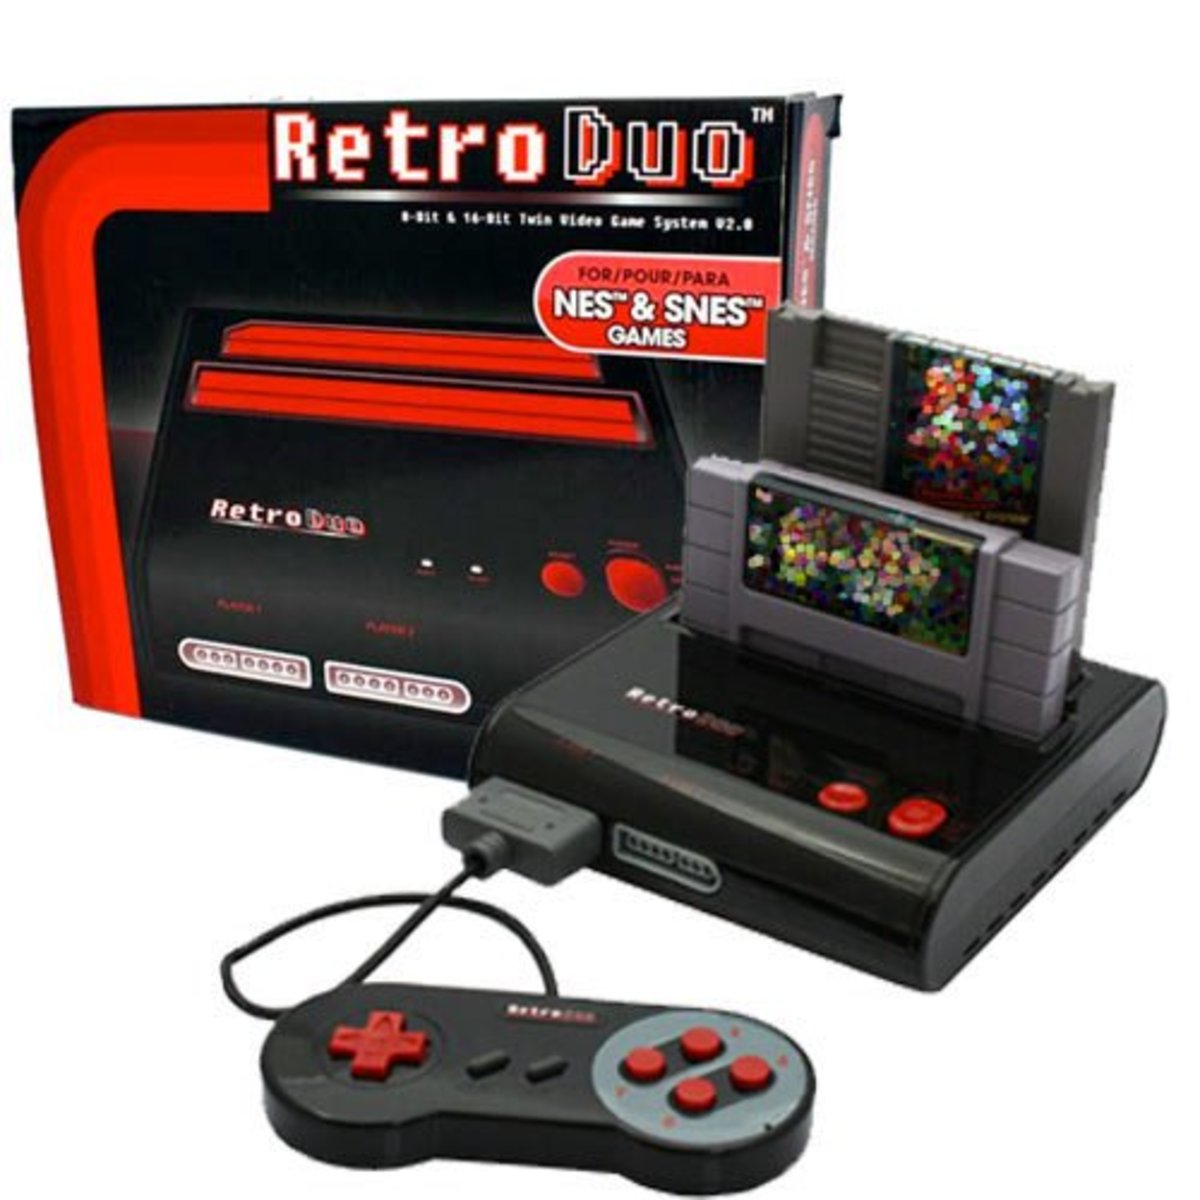 Retro Duo NES and SNES Clone Console Review